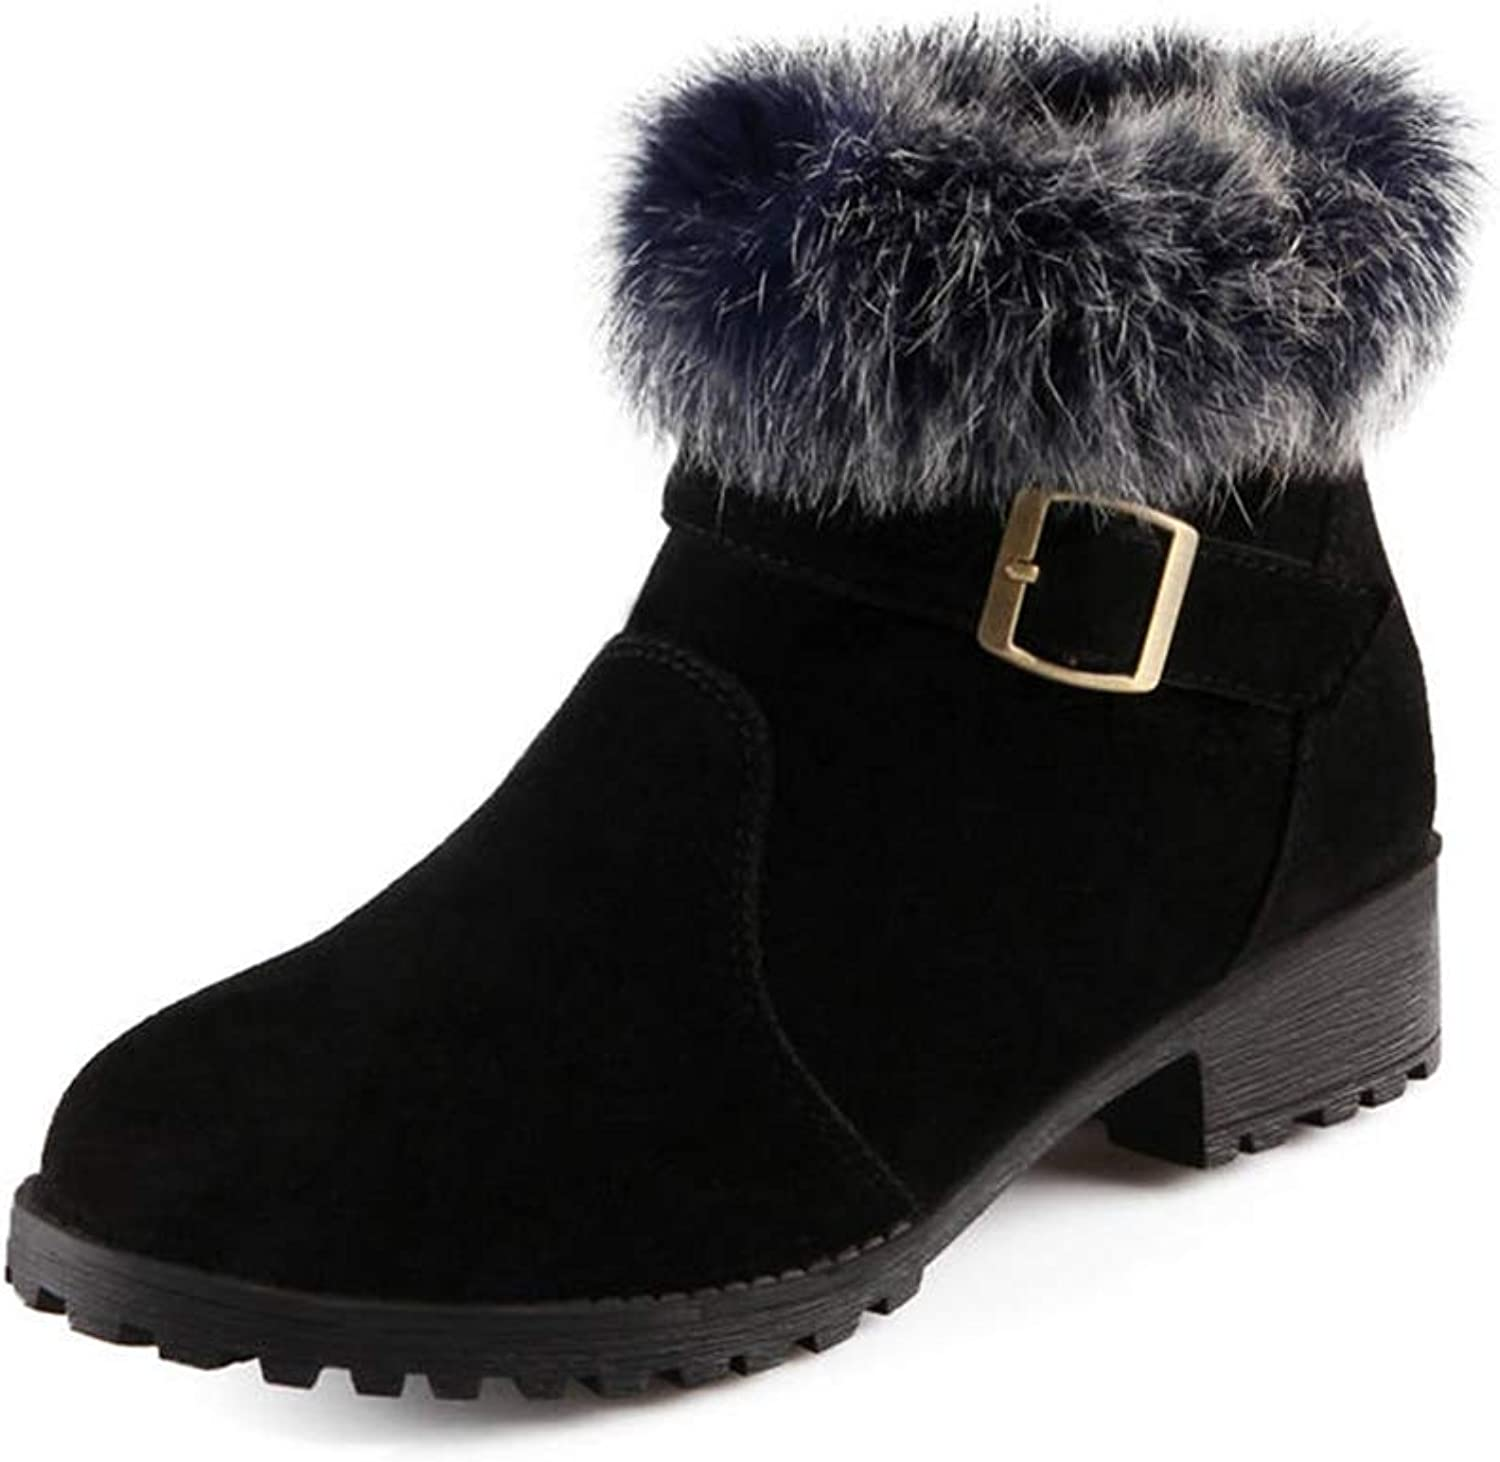 GIY Women's Winter Round Toe Snow Boots Comfortable Warm Fur Lined Casual Suede Low Heels Zipper Ankle Boots